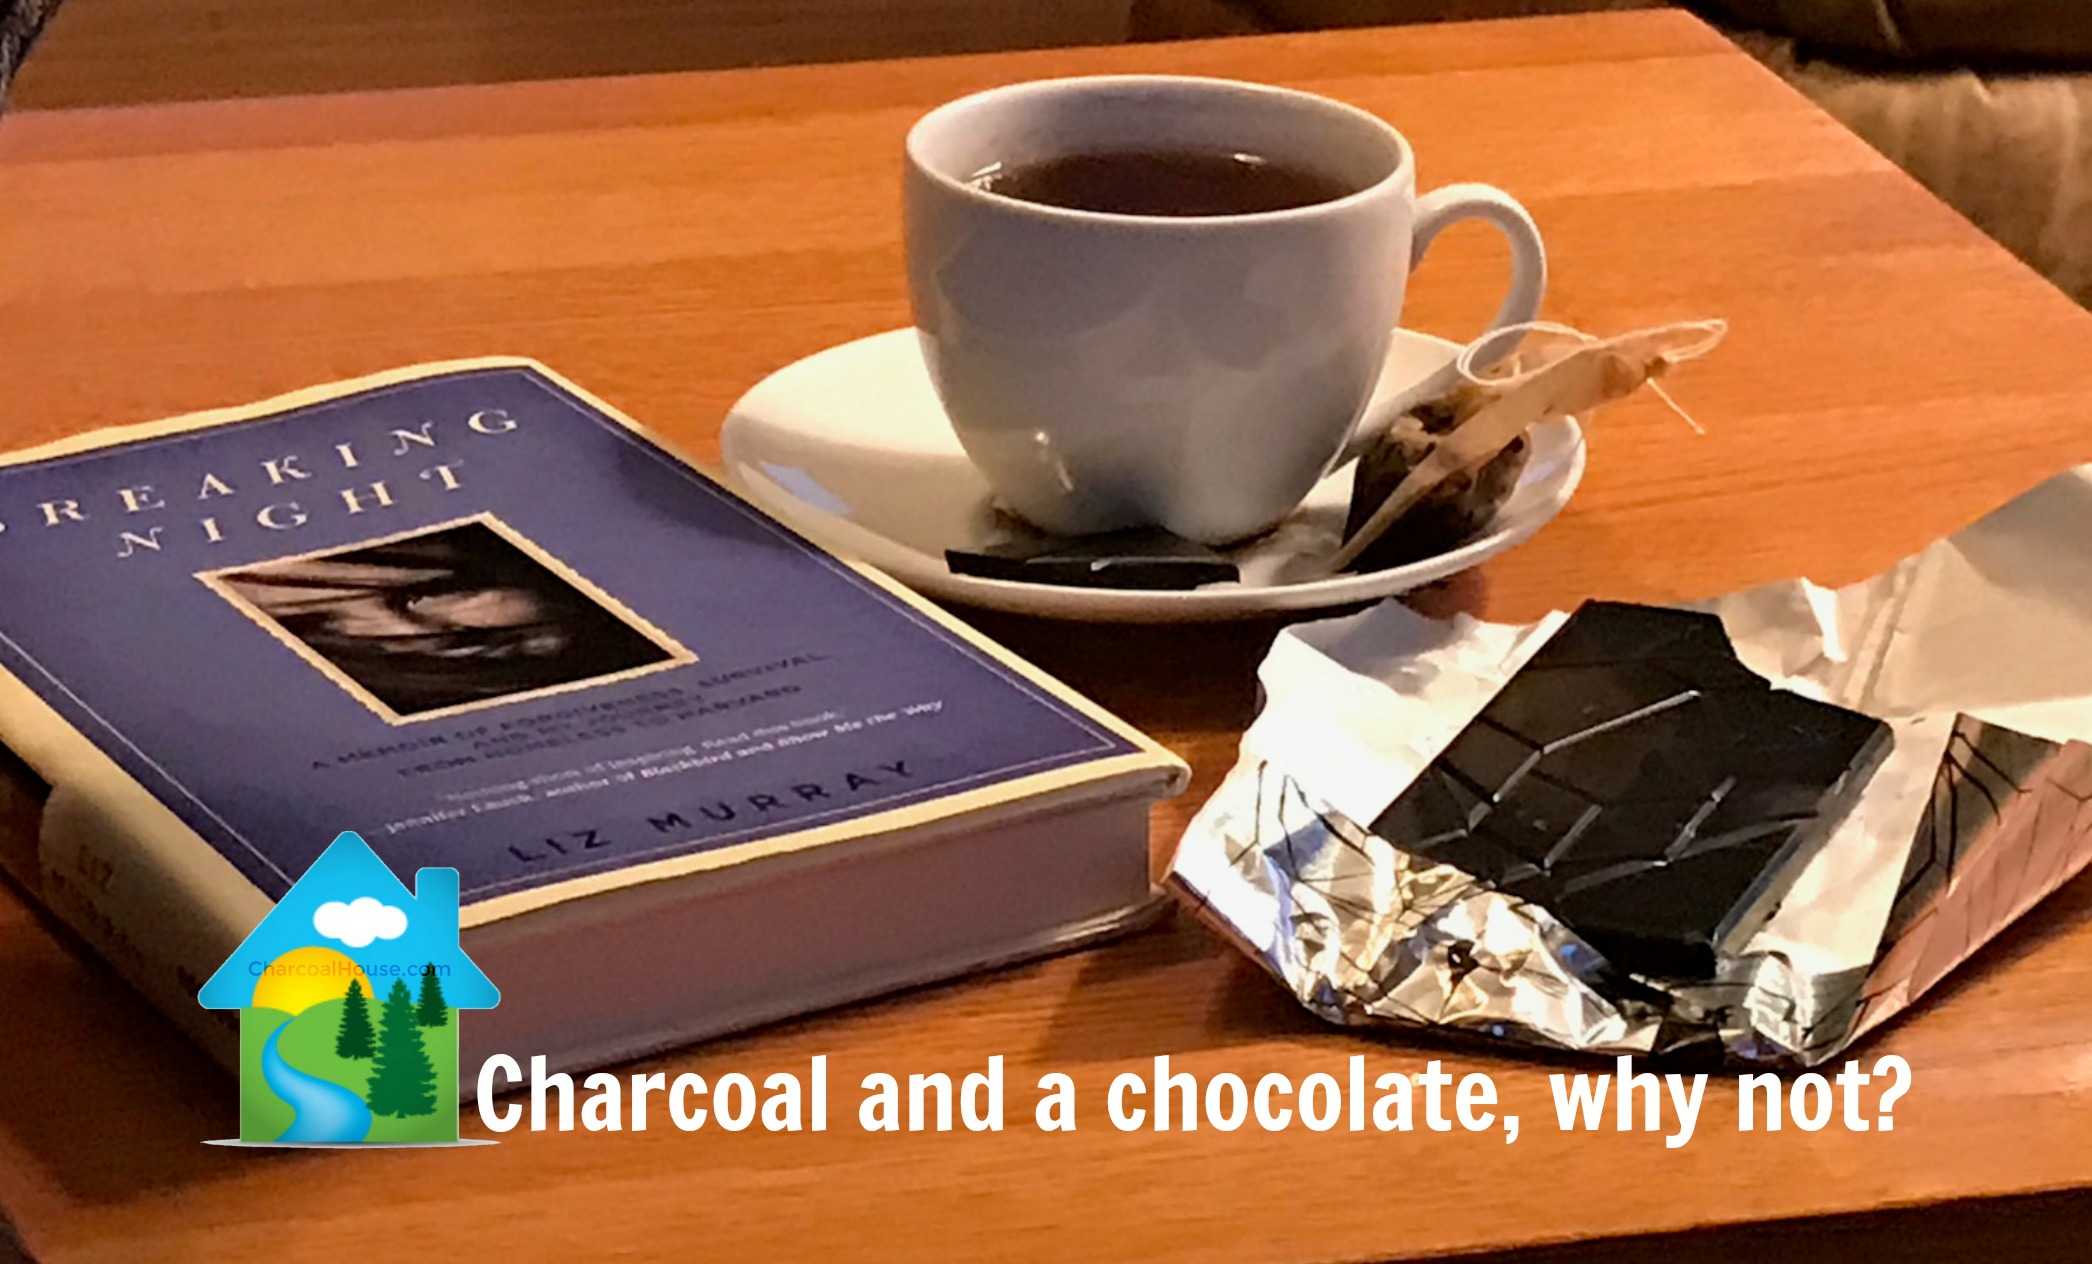 Charcoal and a chocolate why not header - Review: OmNom's Black n' Burnt Barley Chocolate Bar